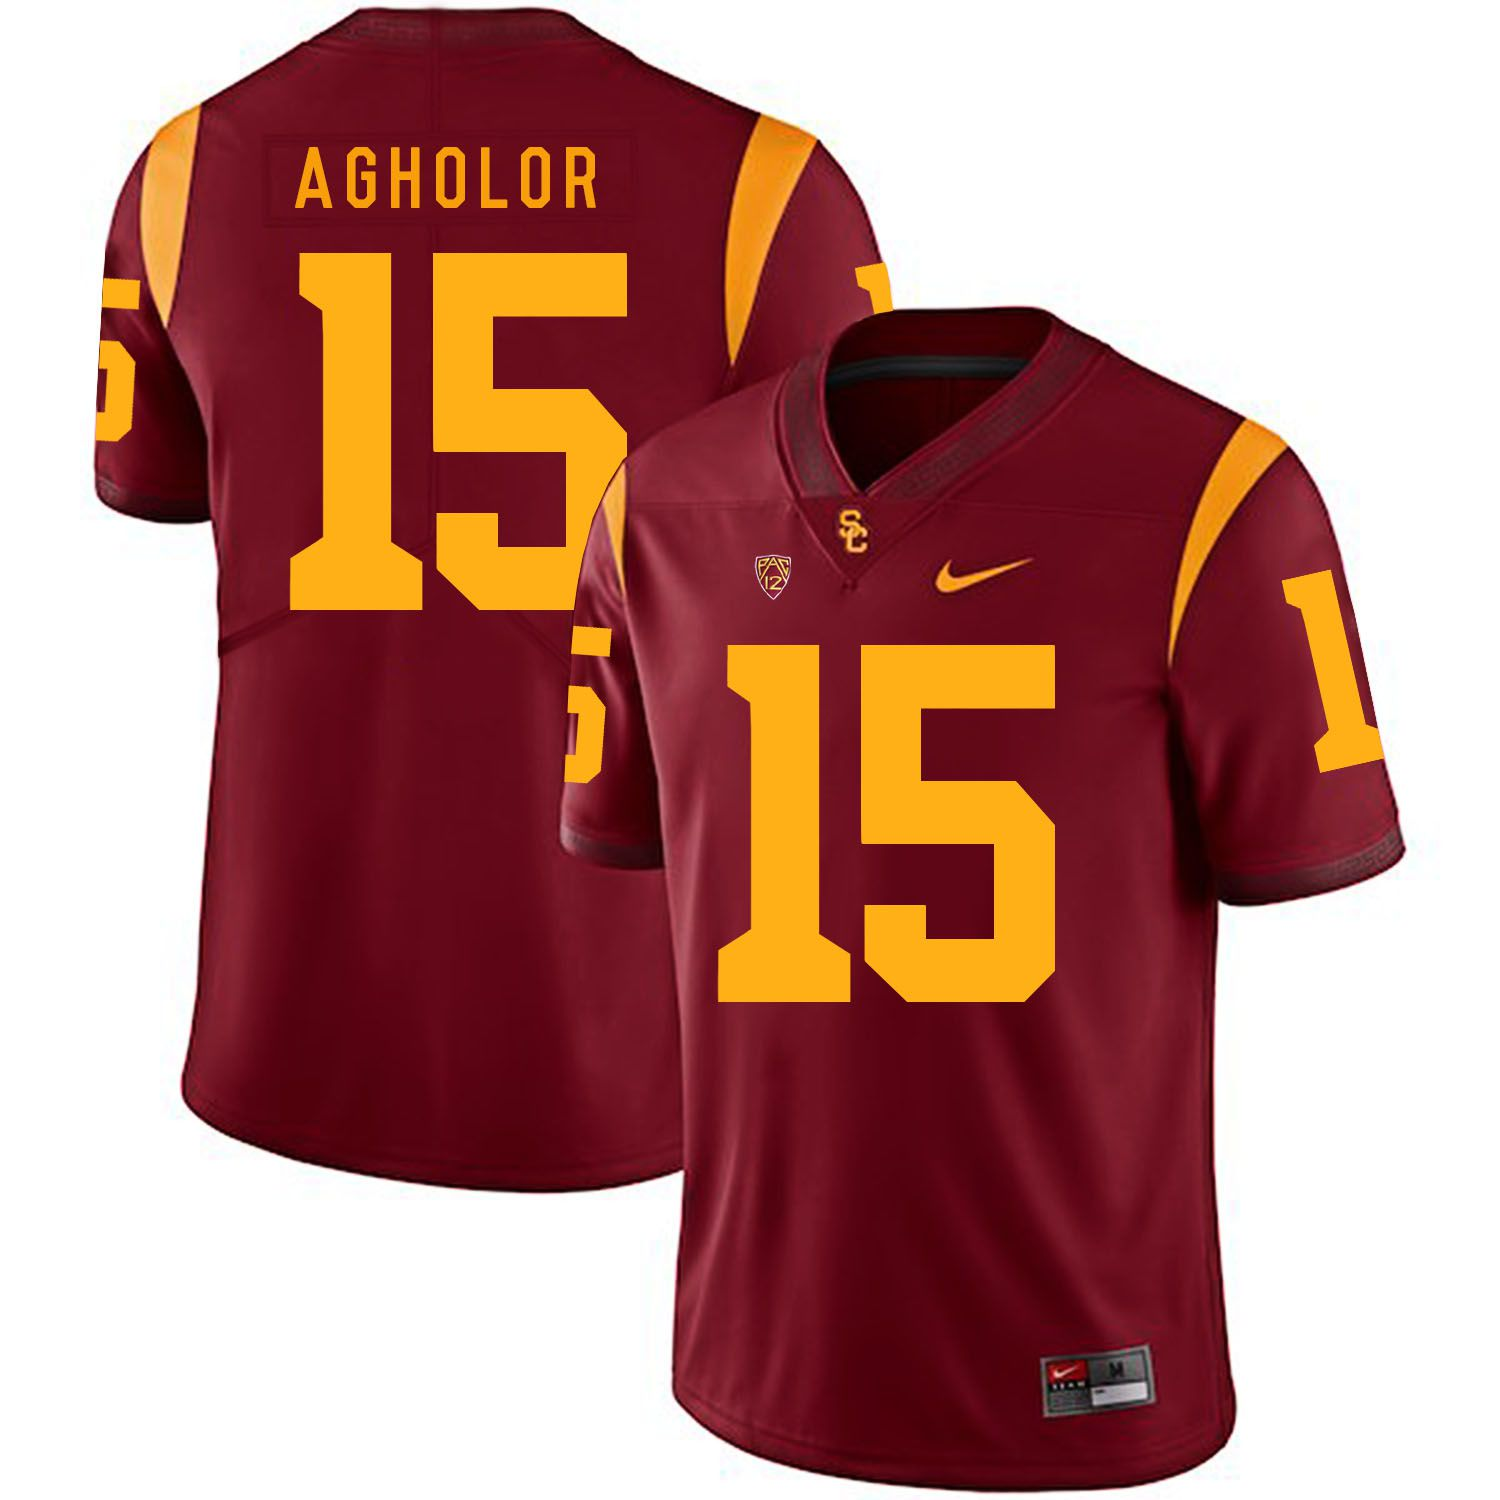 Men USC Trojans 15 Agholor Red Customized NCAA Jerseys